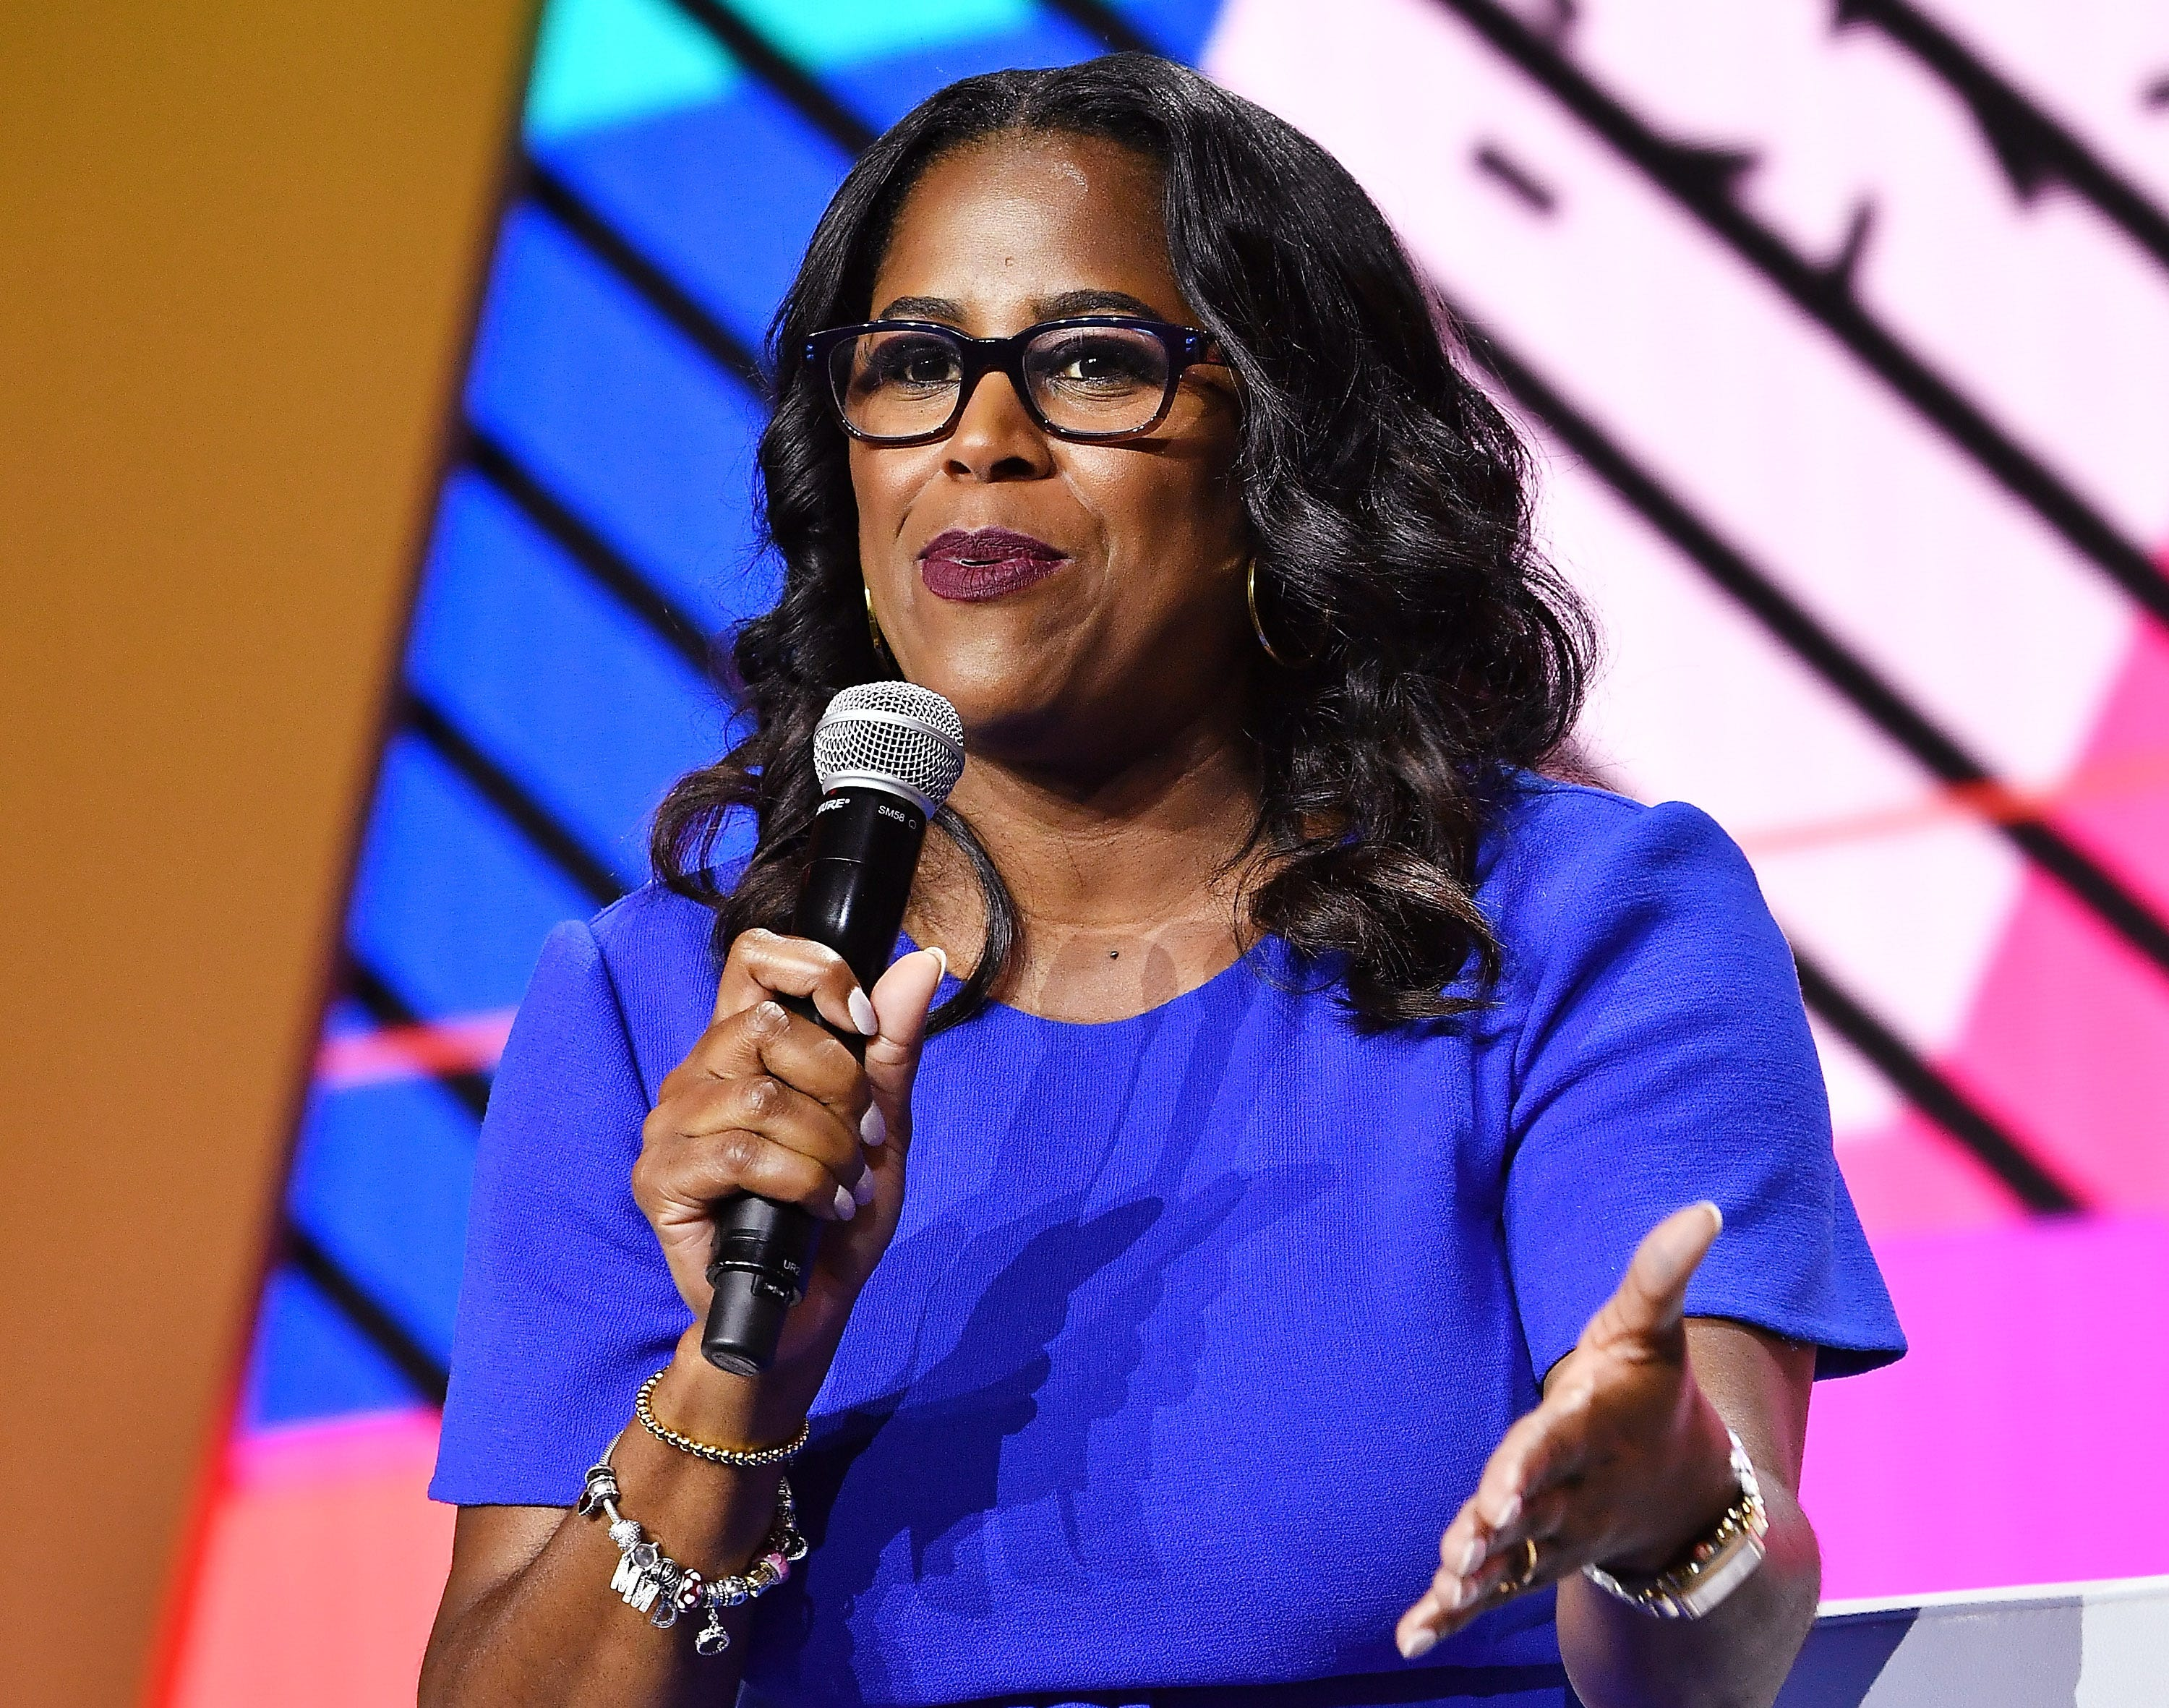 Thasunda Brown Duckett to lead TIAA, becoming second Black woman CEO of Fortune 500 company